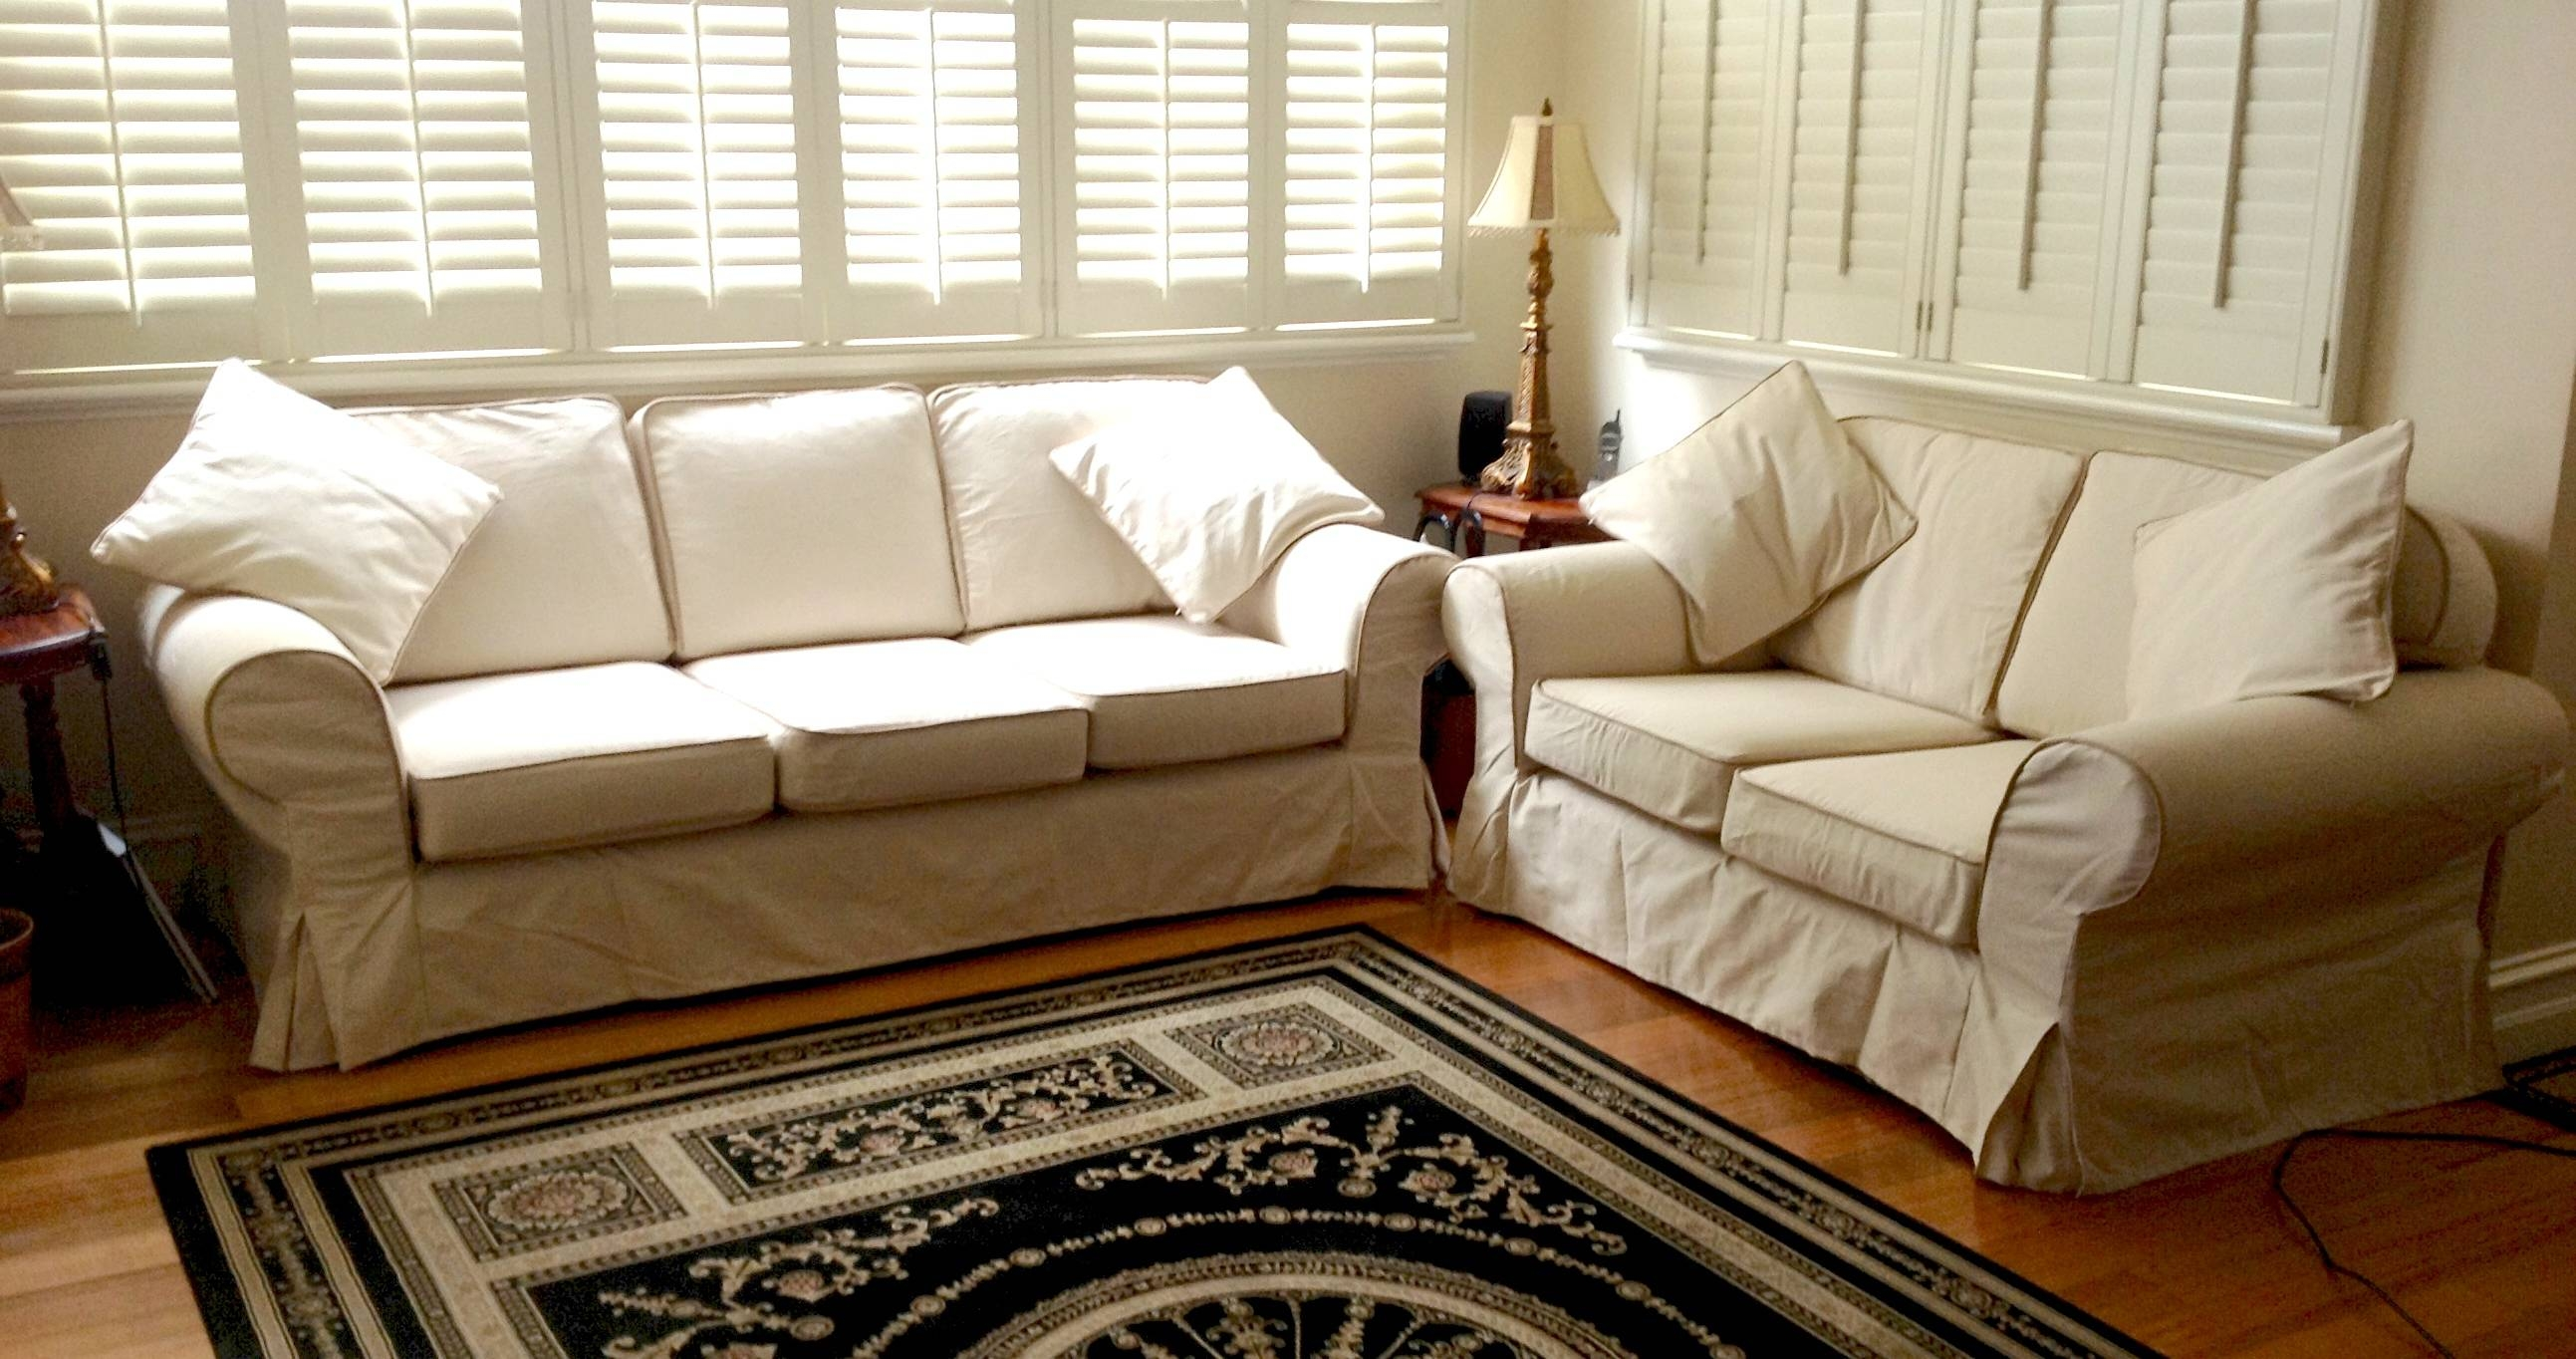 Custom Slipcovers And Couch Cover For Any Sofa Online with regard to Contemporary Sofa Slipcovers (Image 7 of 30)